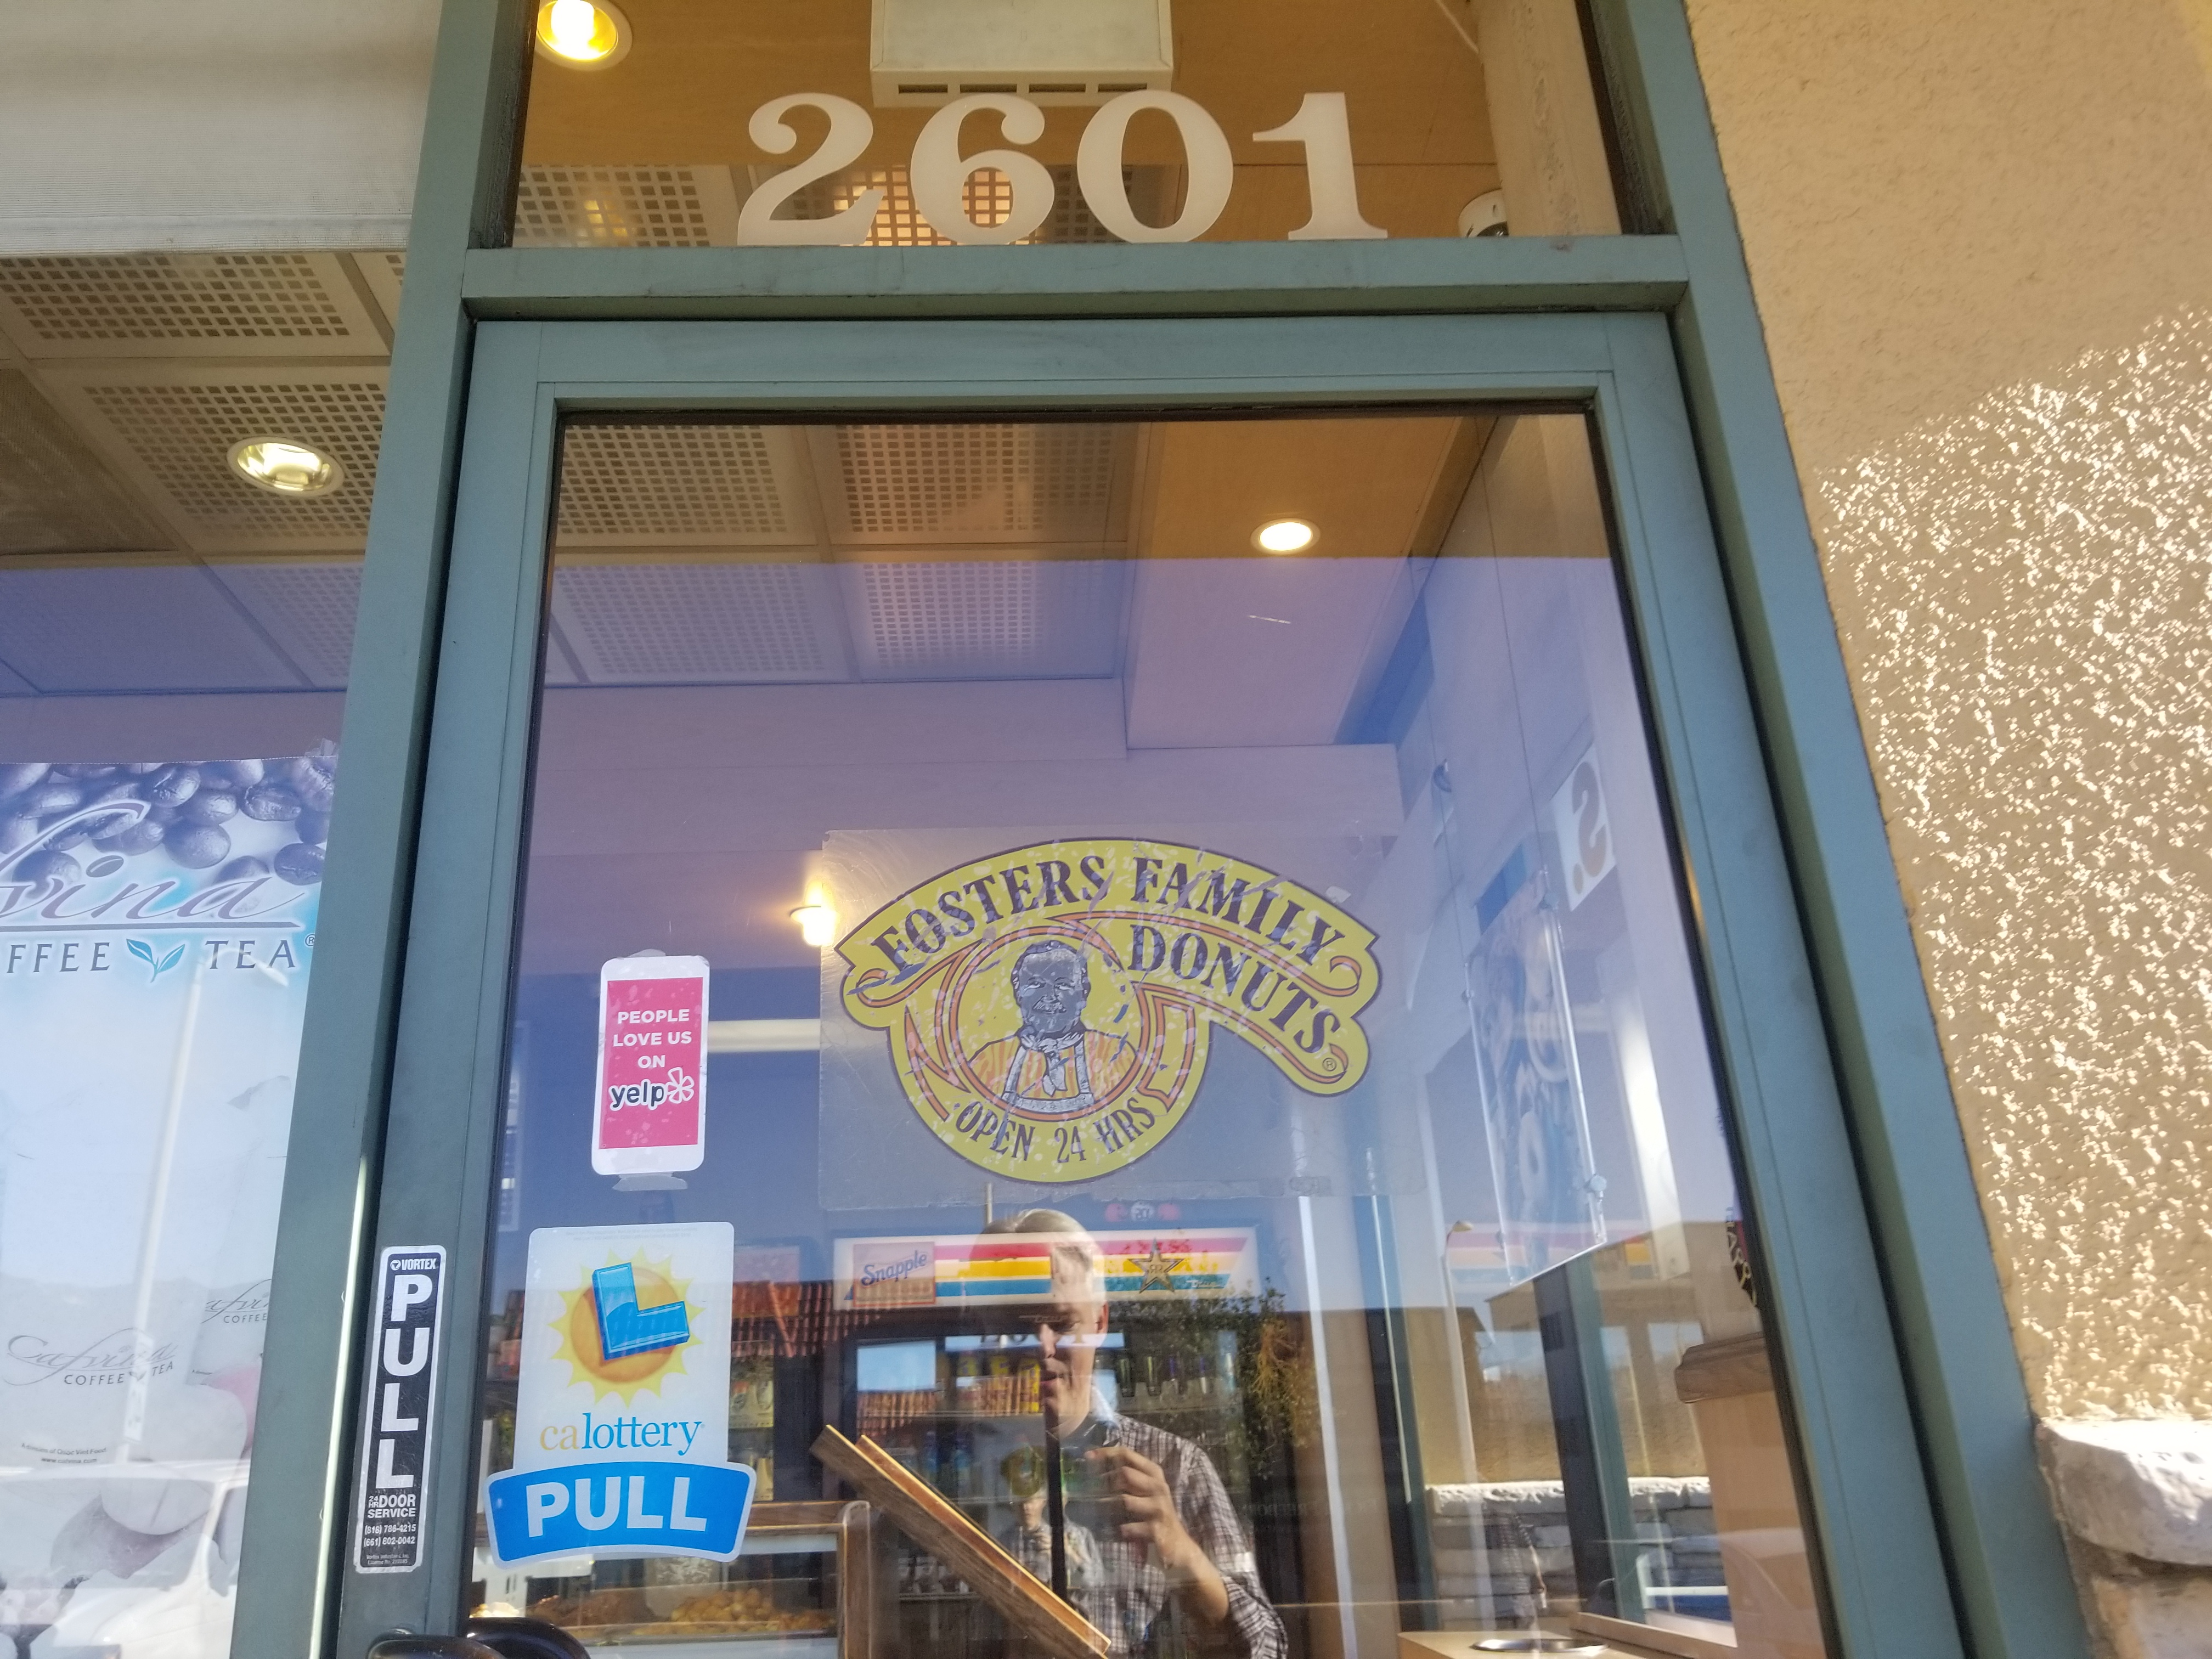 What a great logo on the door.